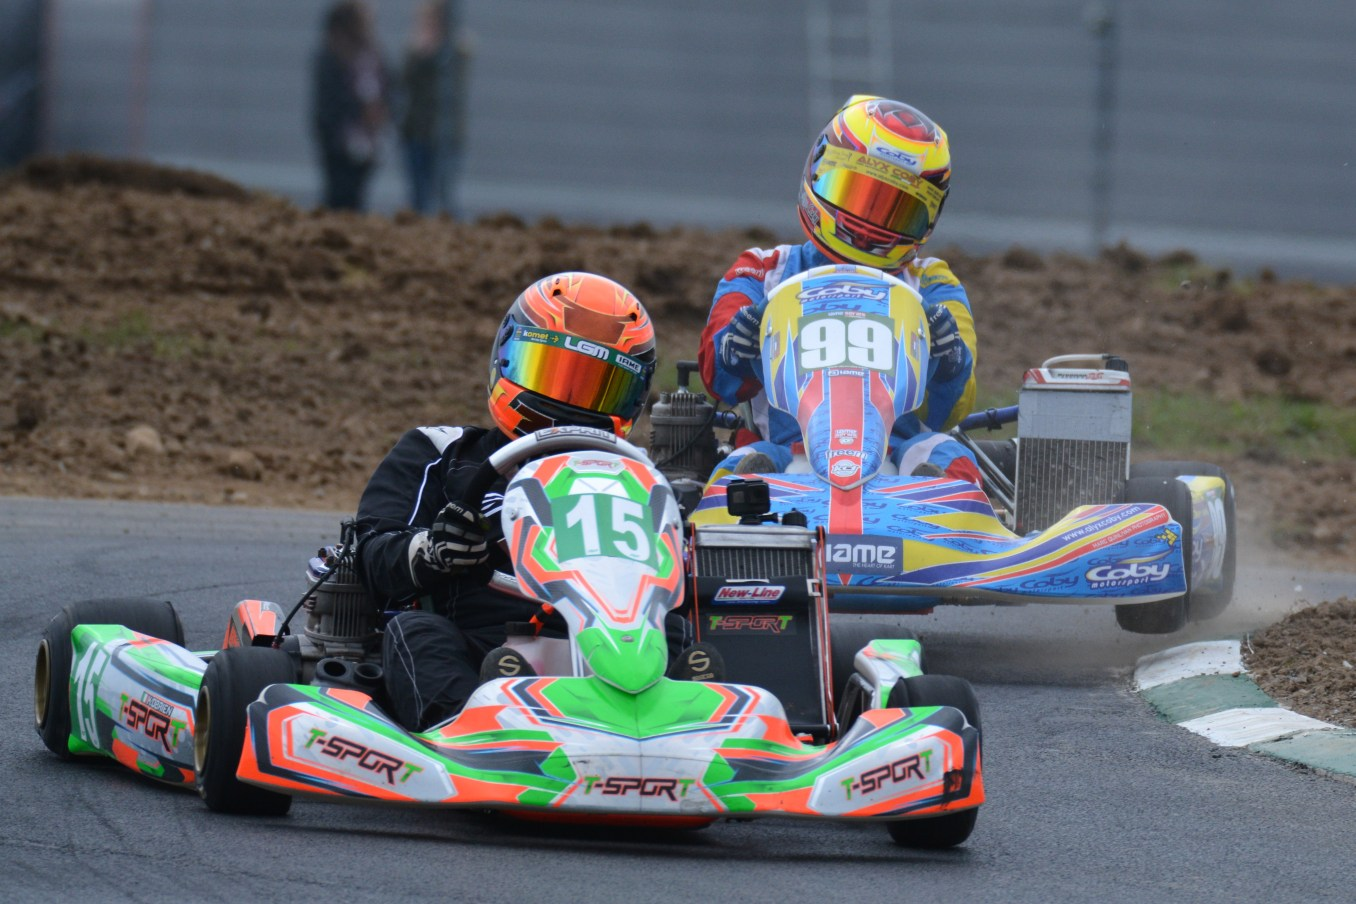 Alyx Coby (number 99) at Round 2 of the Motorsport Ireland Karting Championship at Mondello Park. Photo: Marc Quinlivan.